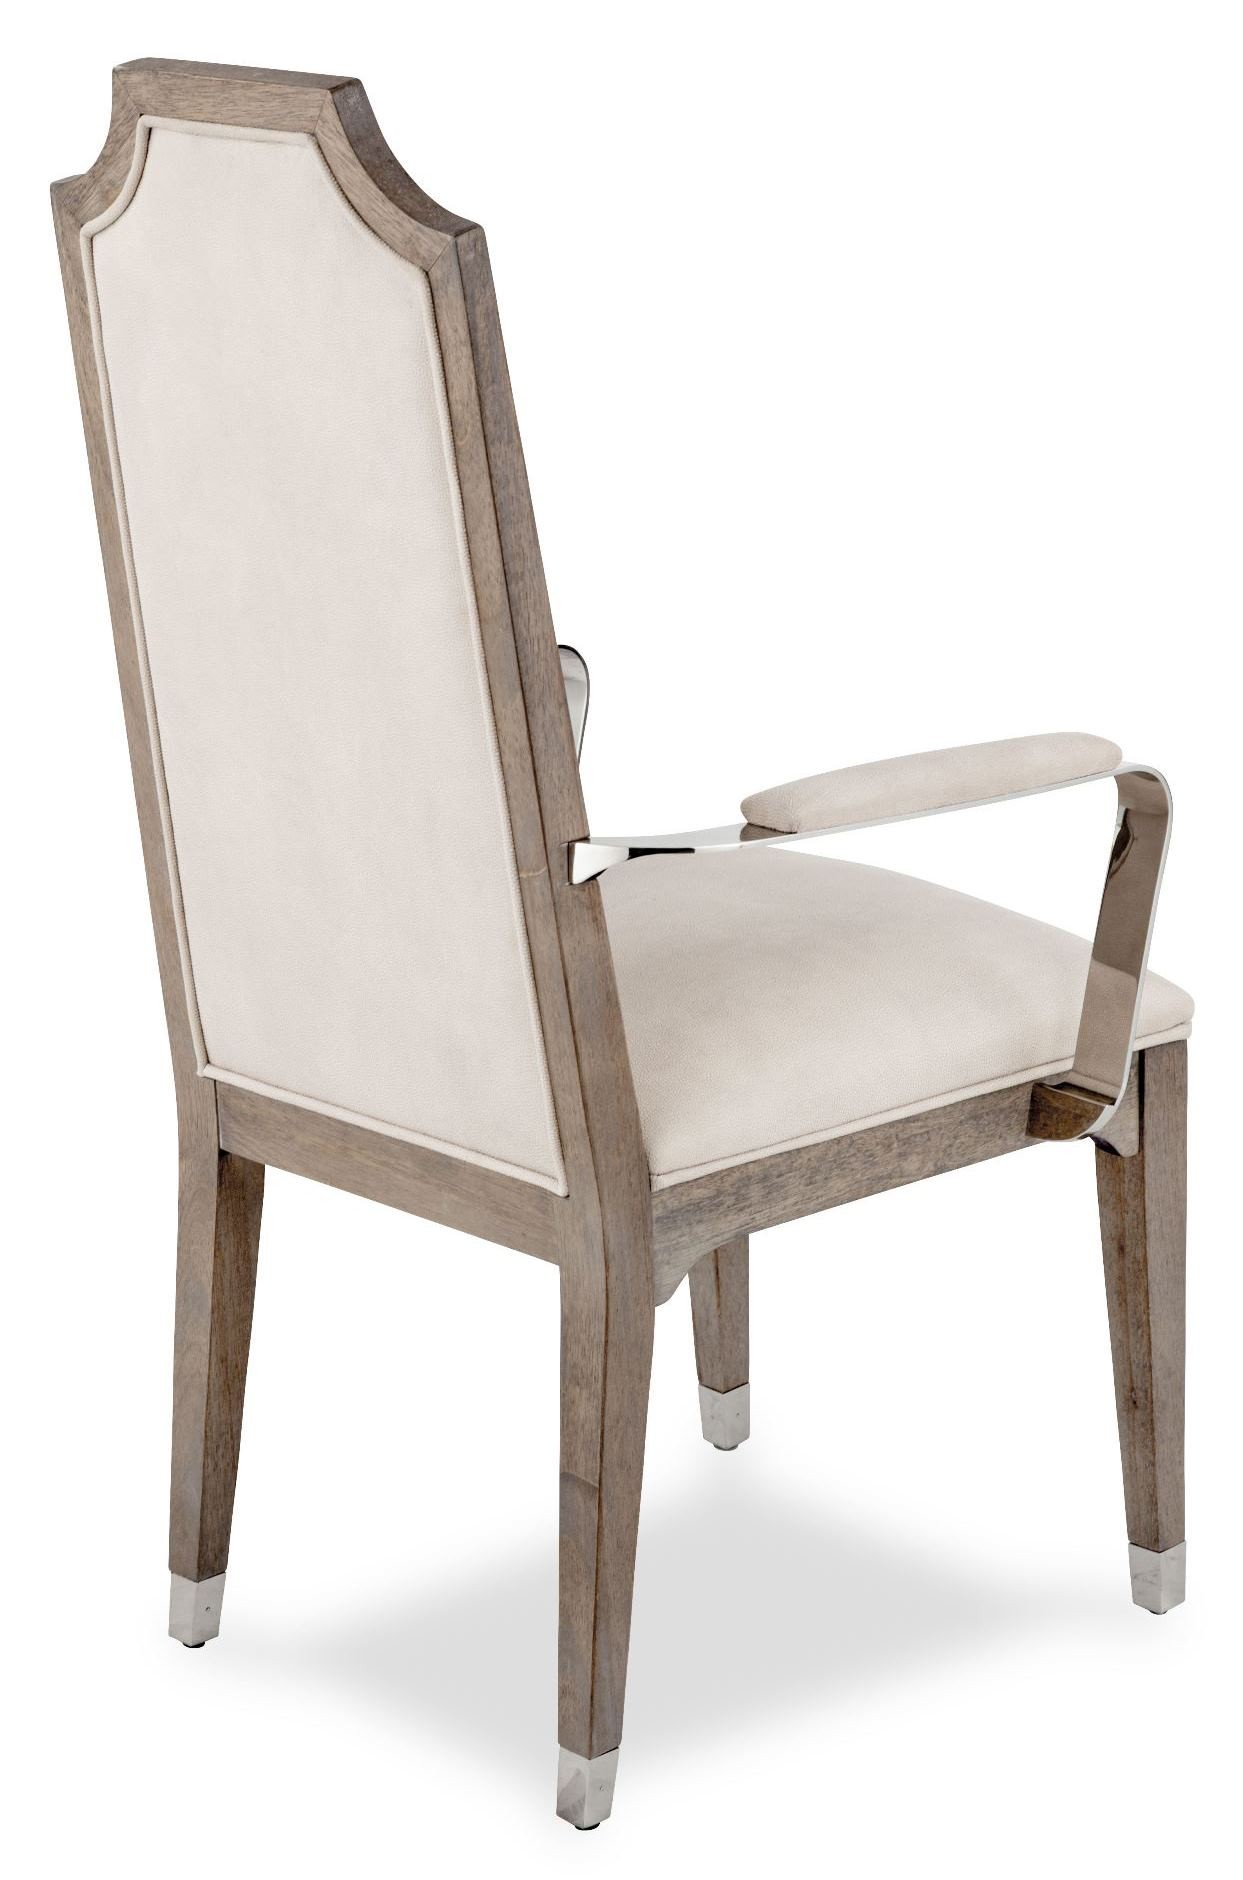 Biscayne West Haze Arm Chair With Stainless Steel Arm From Aico 80004 200